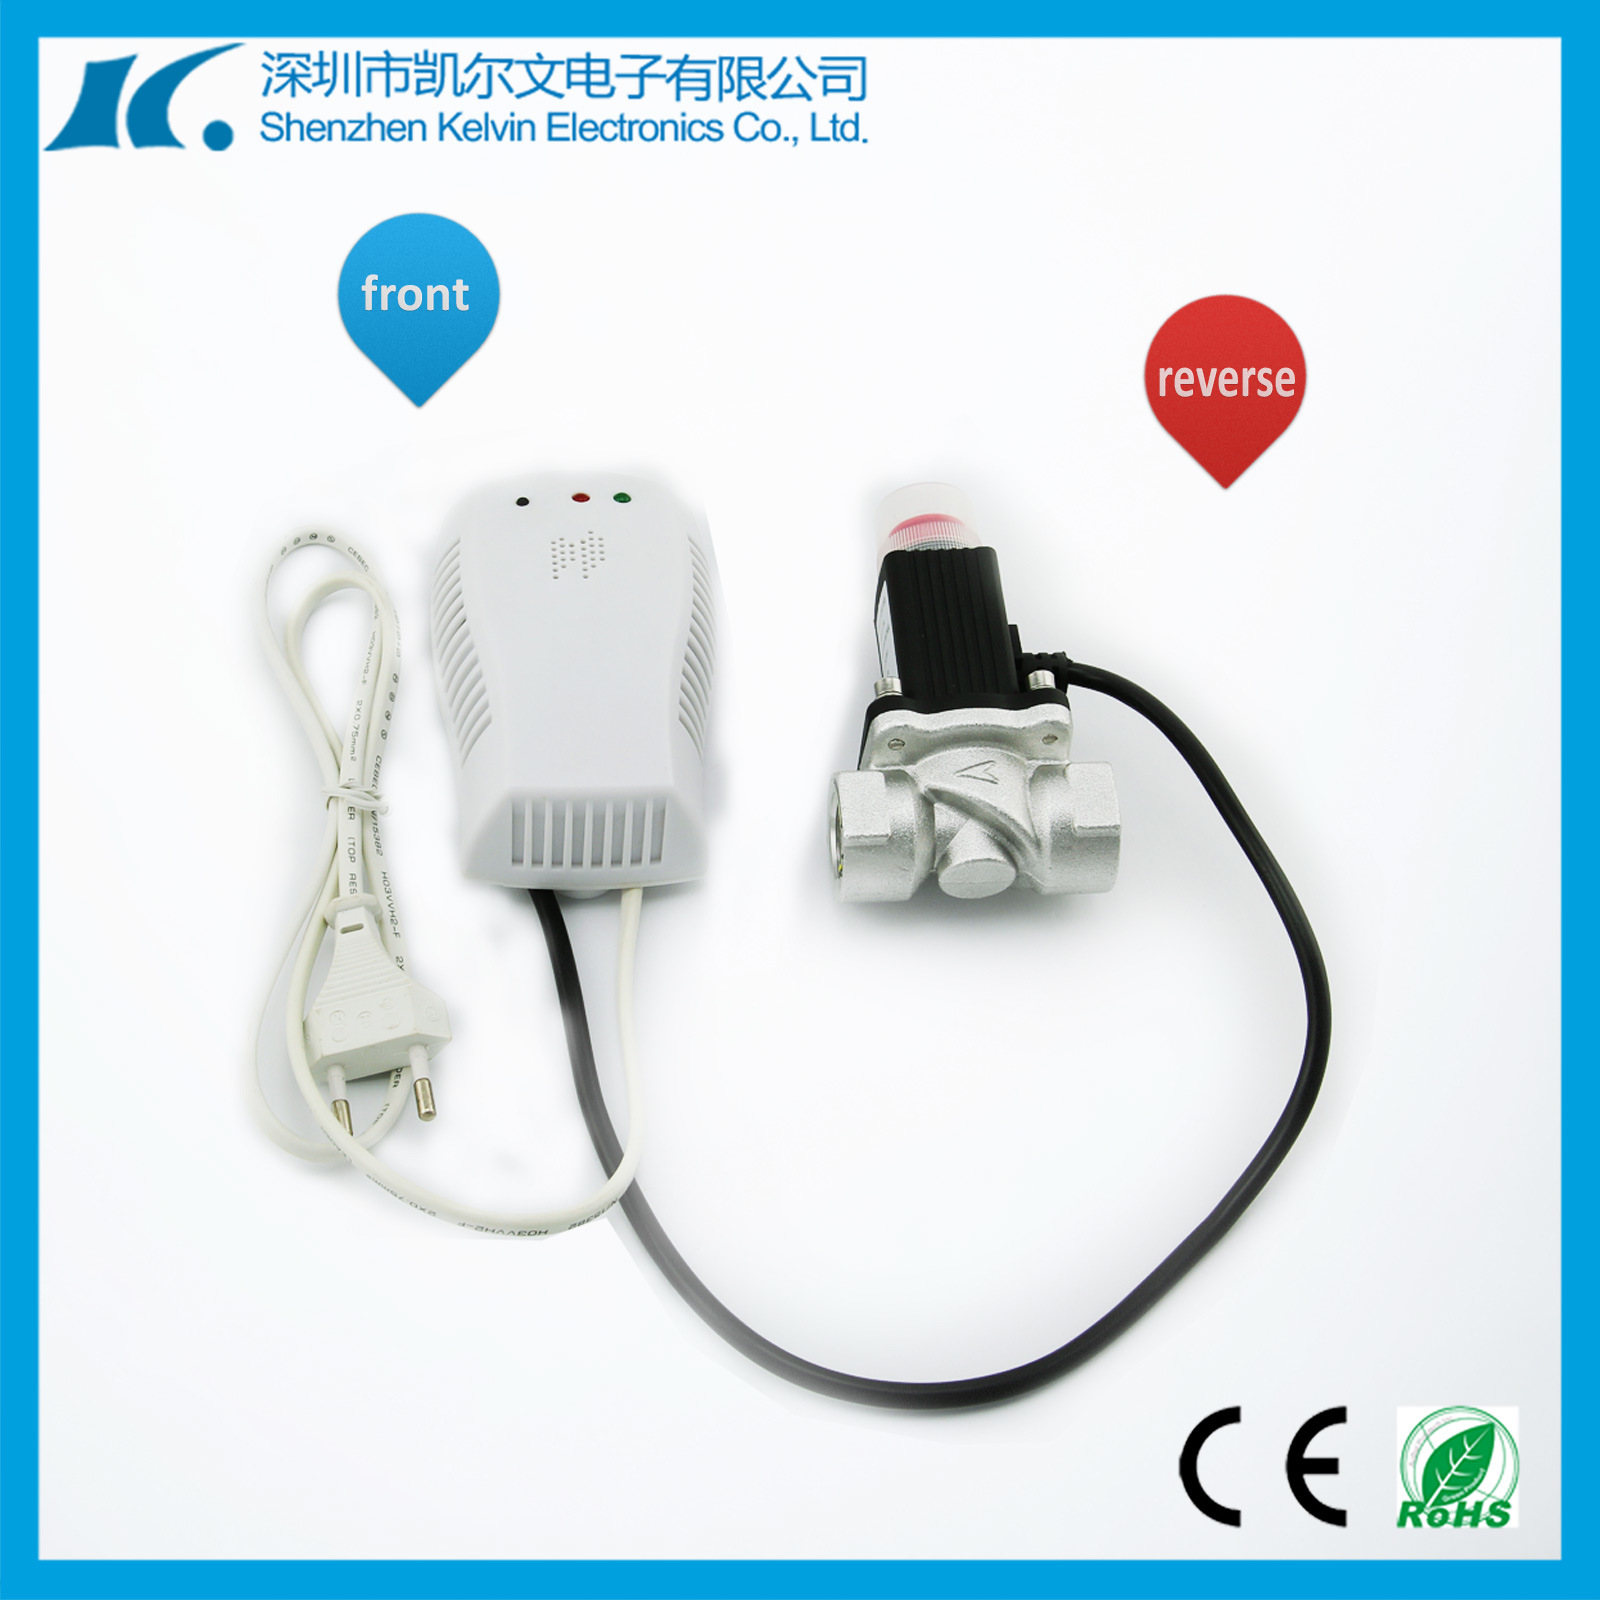 220V Wireless Gas Leakage Detector with 0.25′′ Solenoid Valve Kl-Qg08